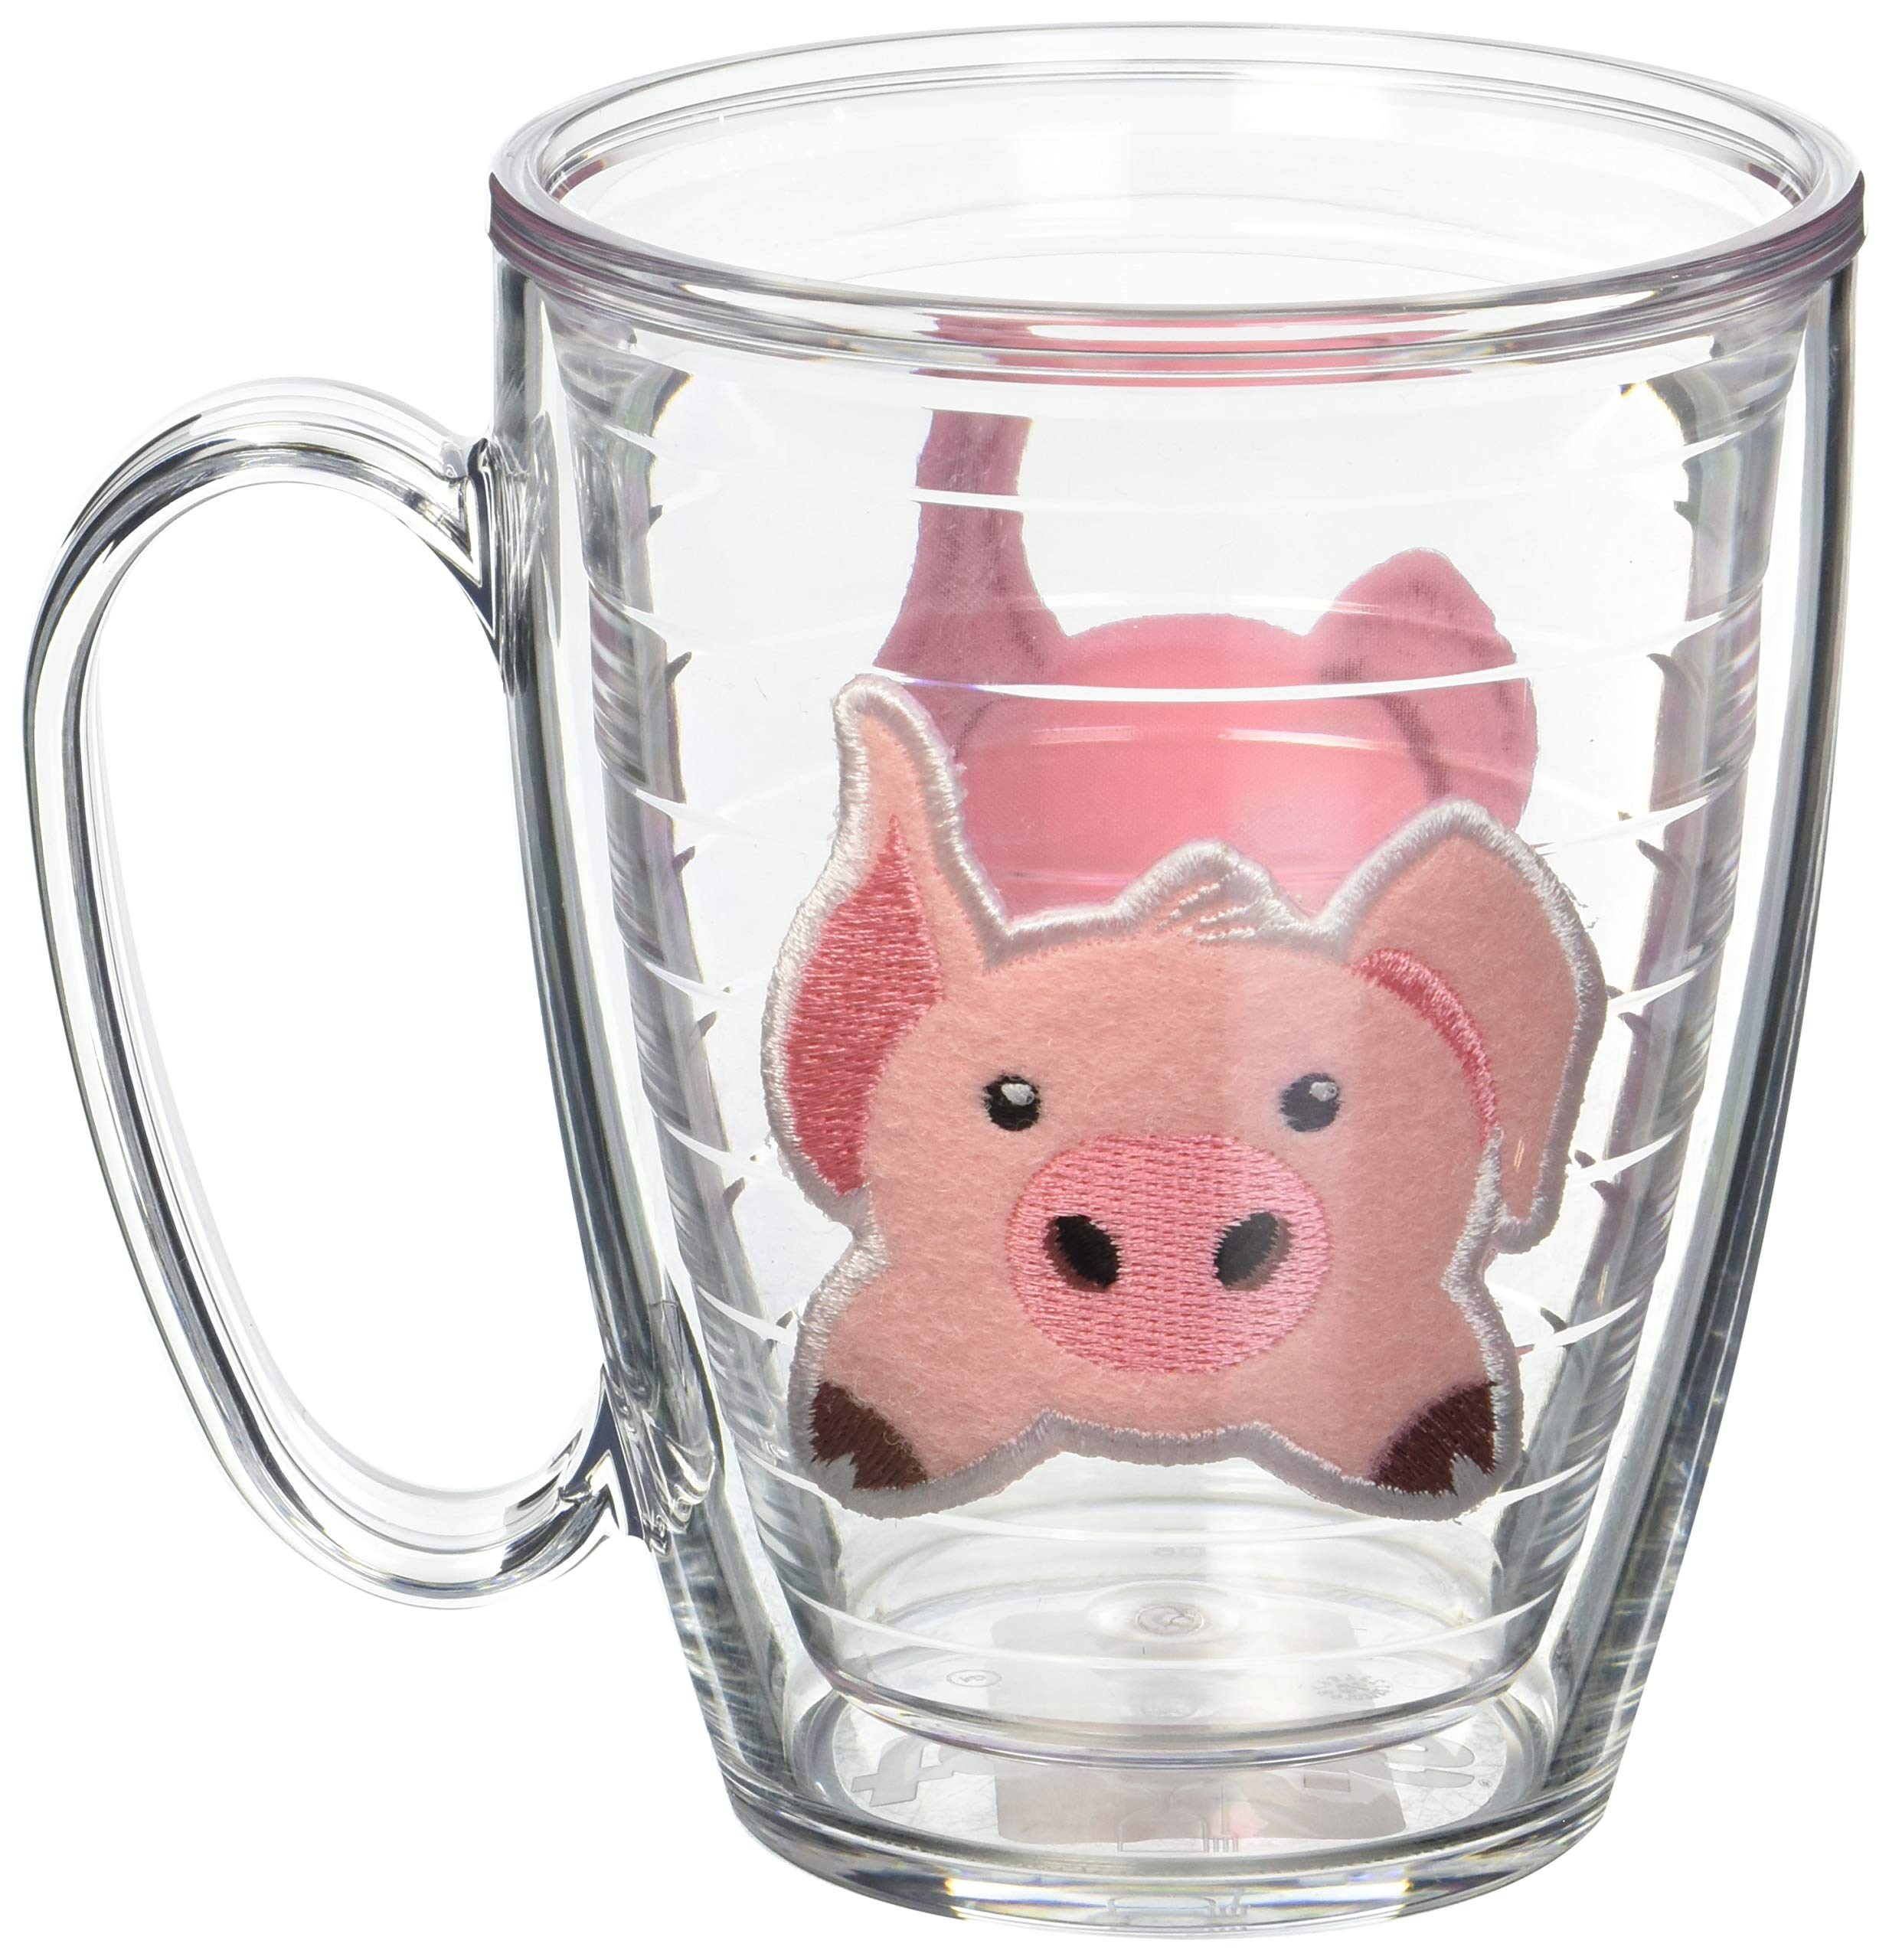 Tervis 1133504 Front & Back Pig Insulated Tumbler with Emblem, 16oz Mug, Clear by Tervis (Image #1)